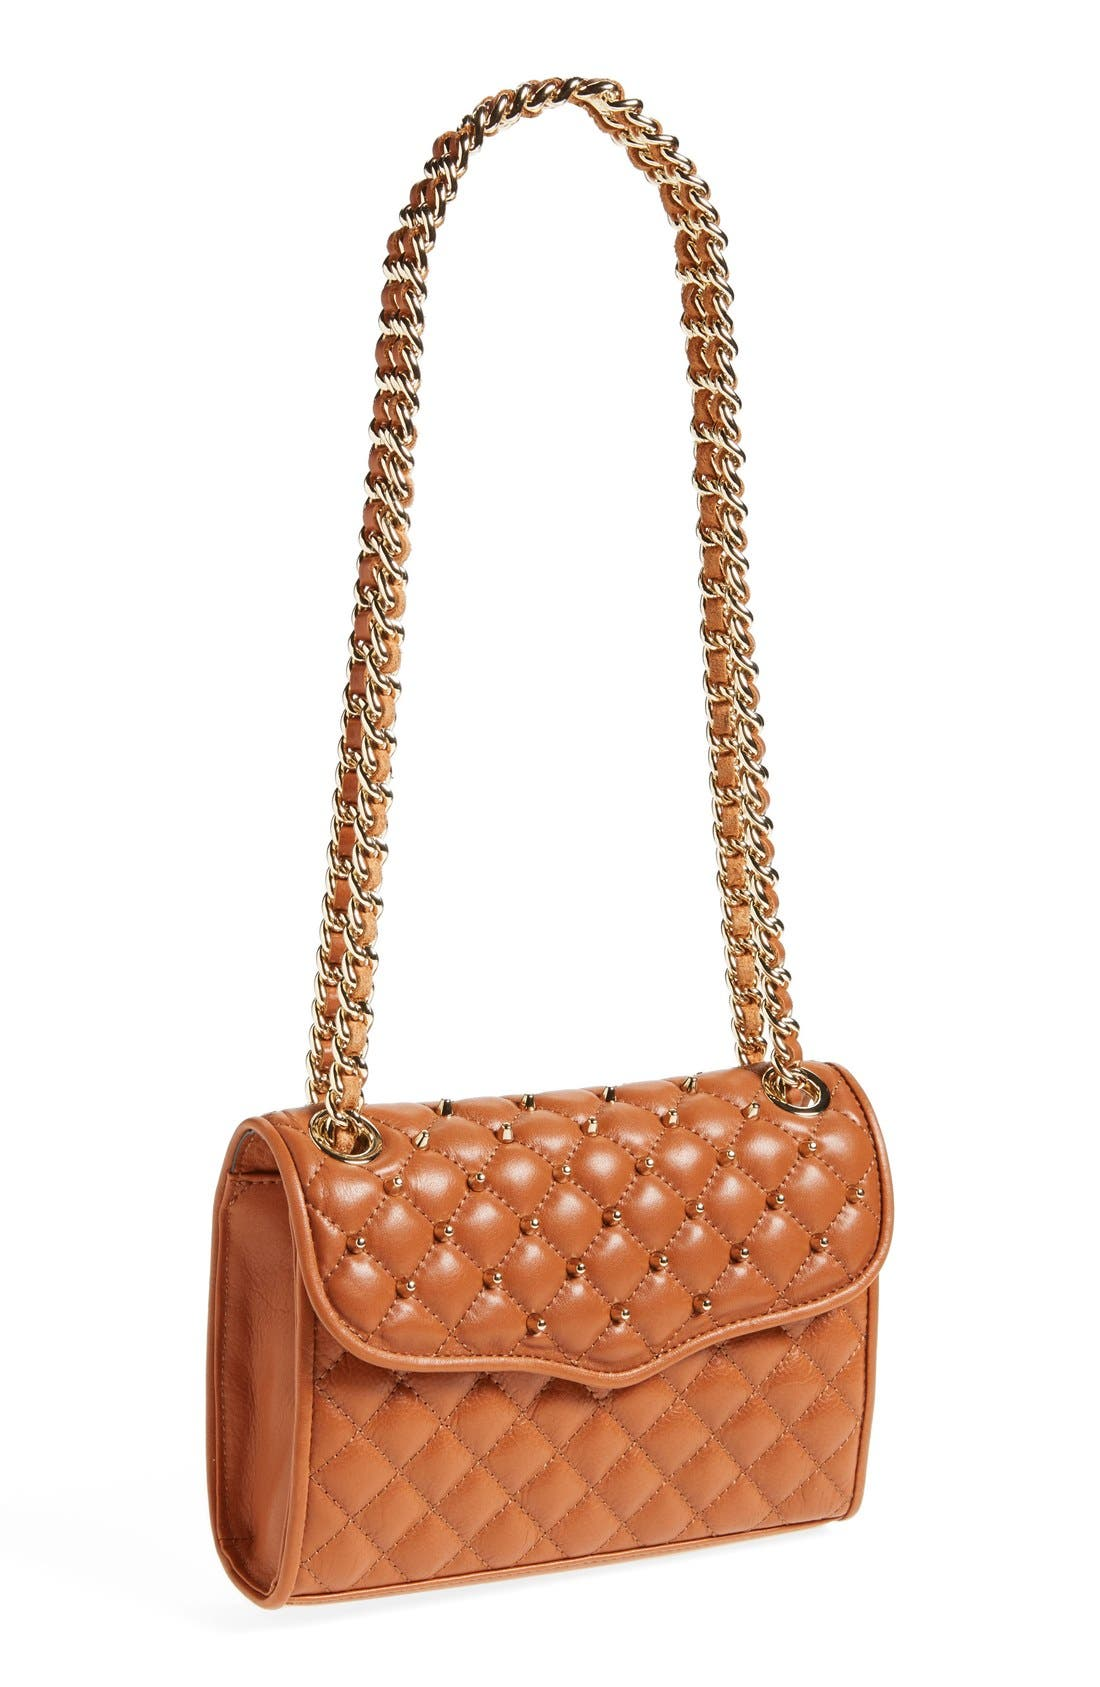 Alternate Image 1 Selected - Rebecca Minkoff 'Mini Quilted Affair with Studs' Shoulder Bag